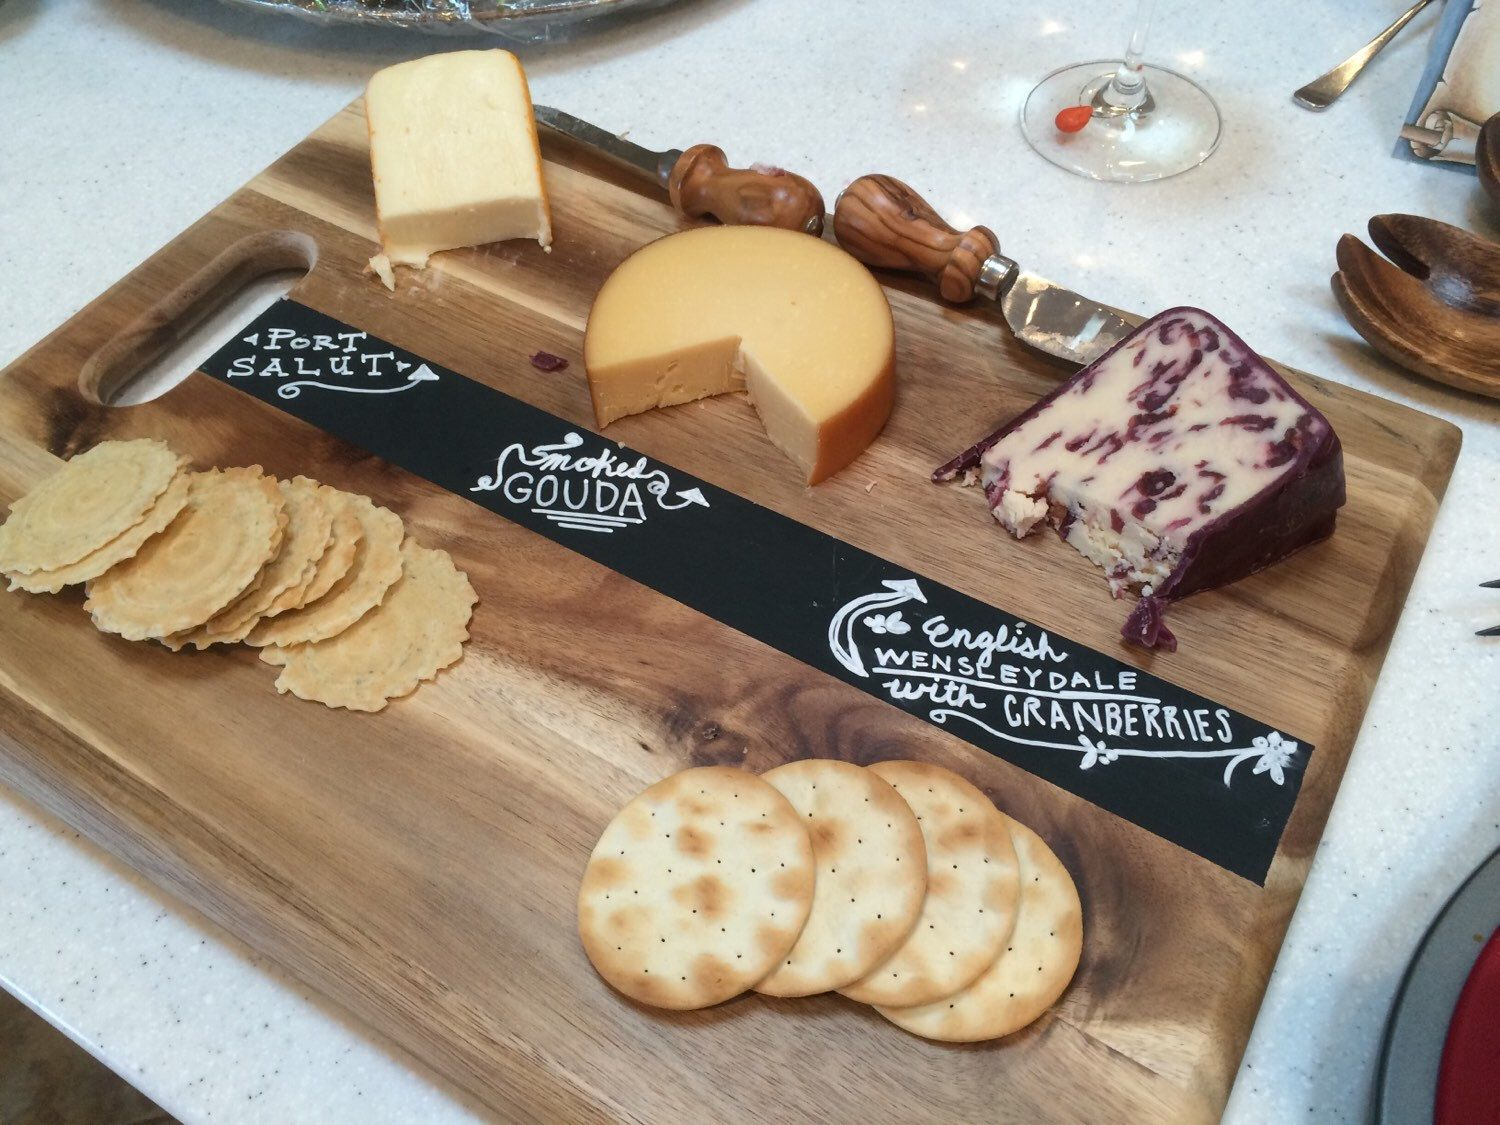 Make your cheese plate simply stunning diy wood slice cutting board - Chalkboard Cutting Board Cheese Tray